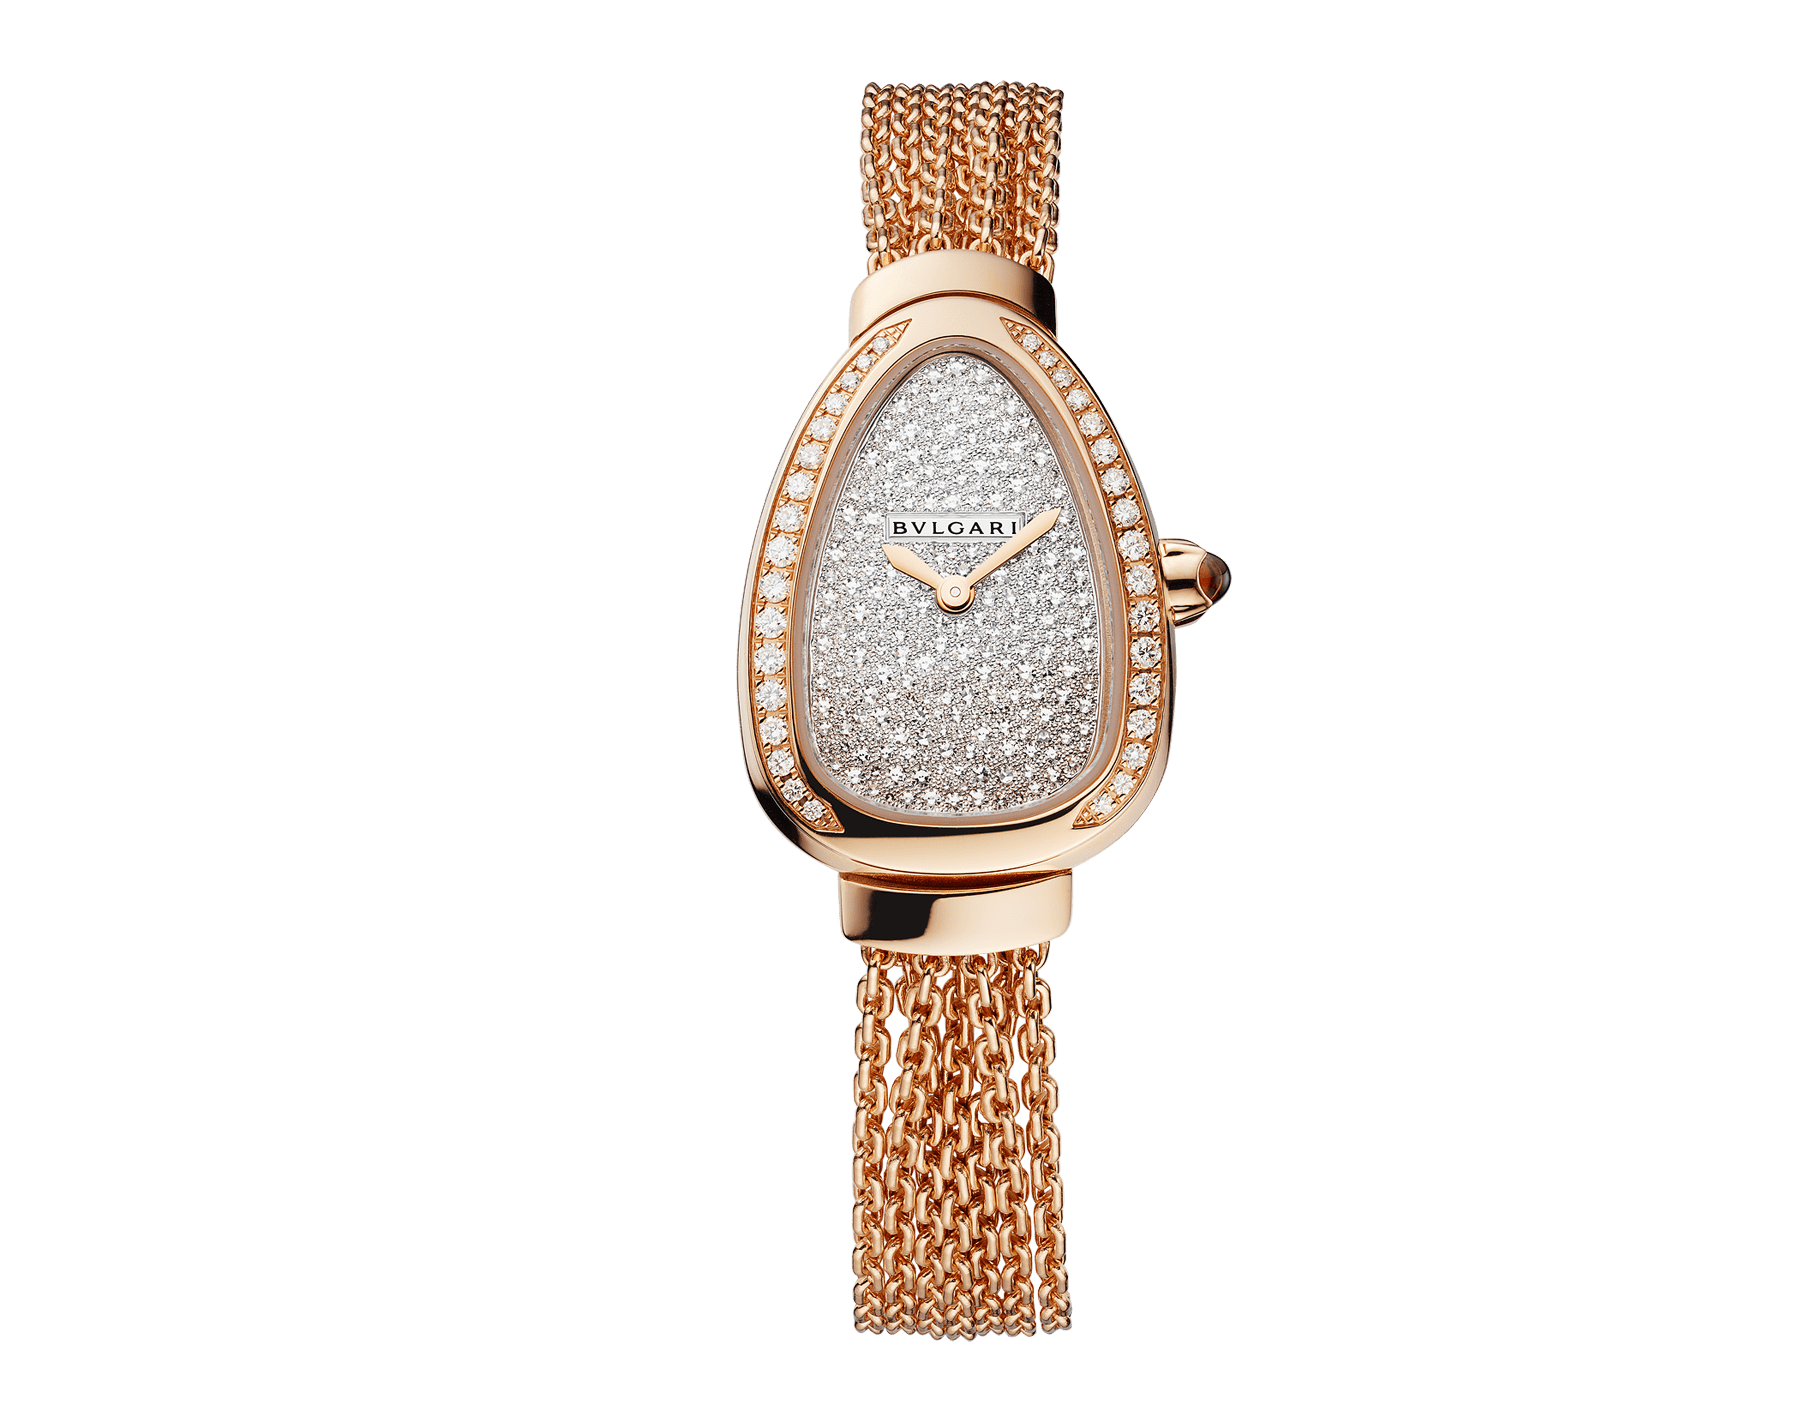 Serpenti watch with 18 kt rose gold case set with brilliant-cut diamonds, snow pavé dial and interchangeable single spiral chain bracelet in 18 kt rose gold 103063 image 1